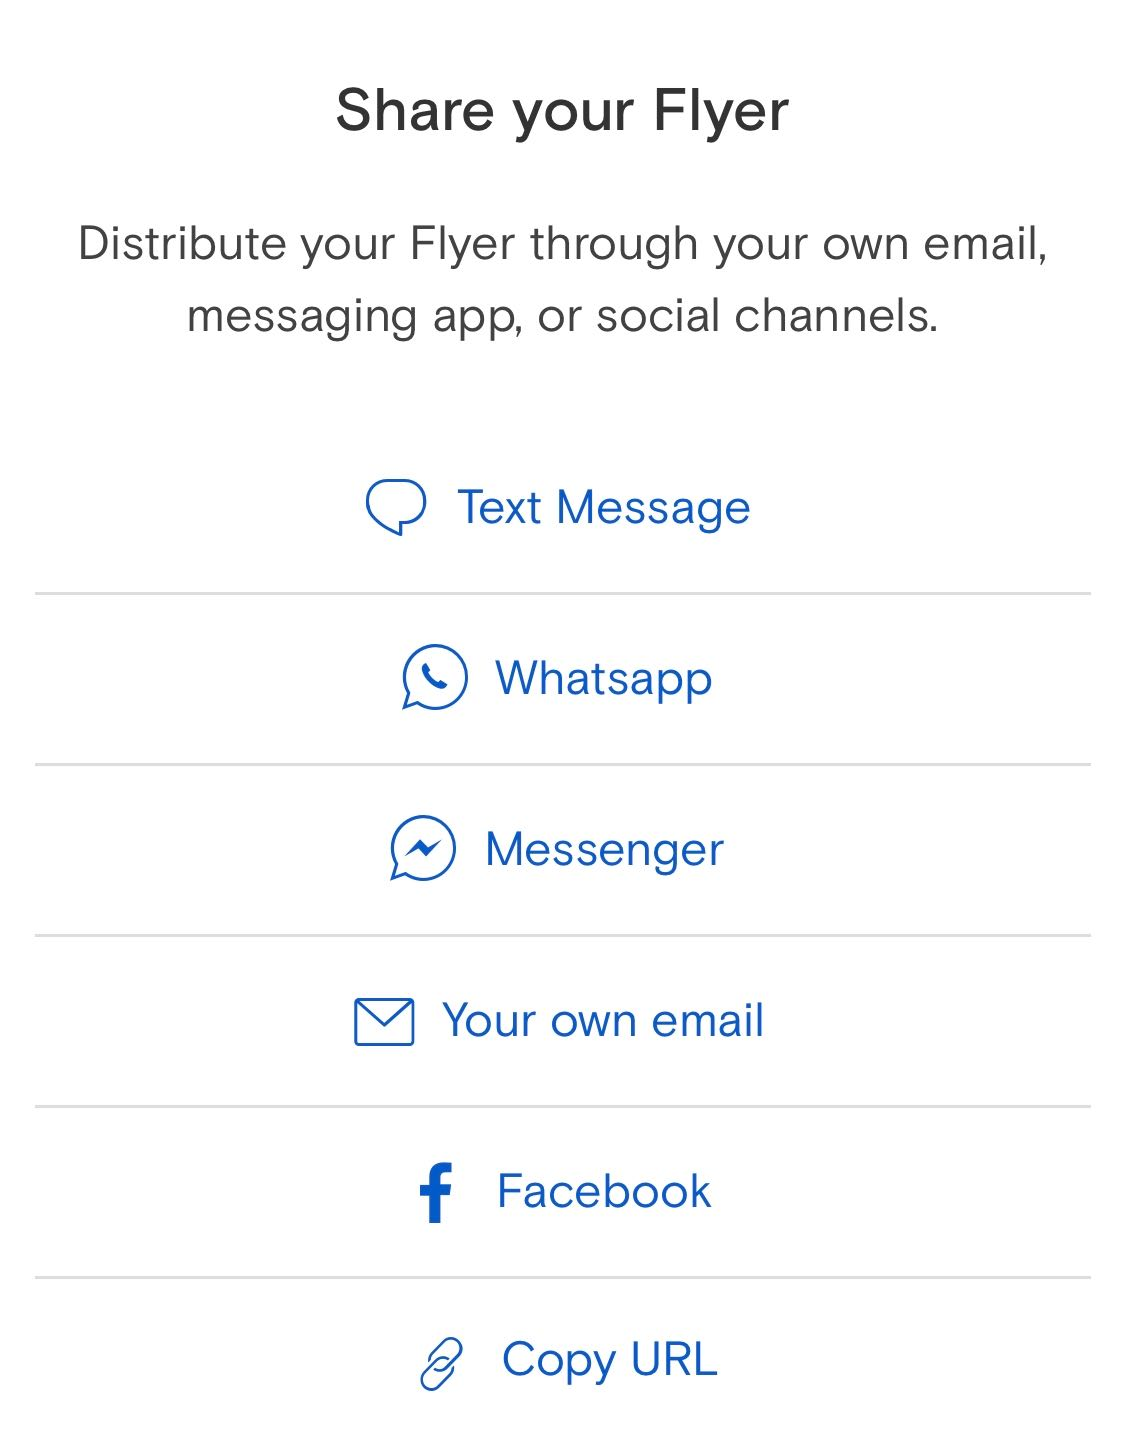 How do I text my Flyer or send from my own email? How do I